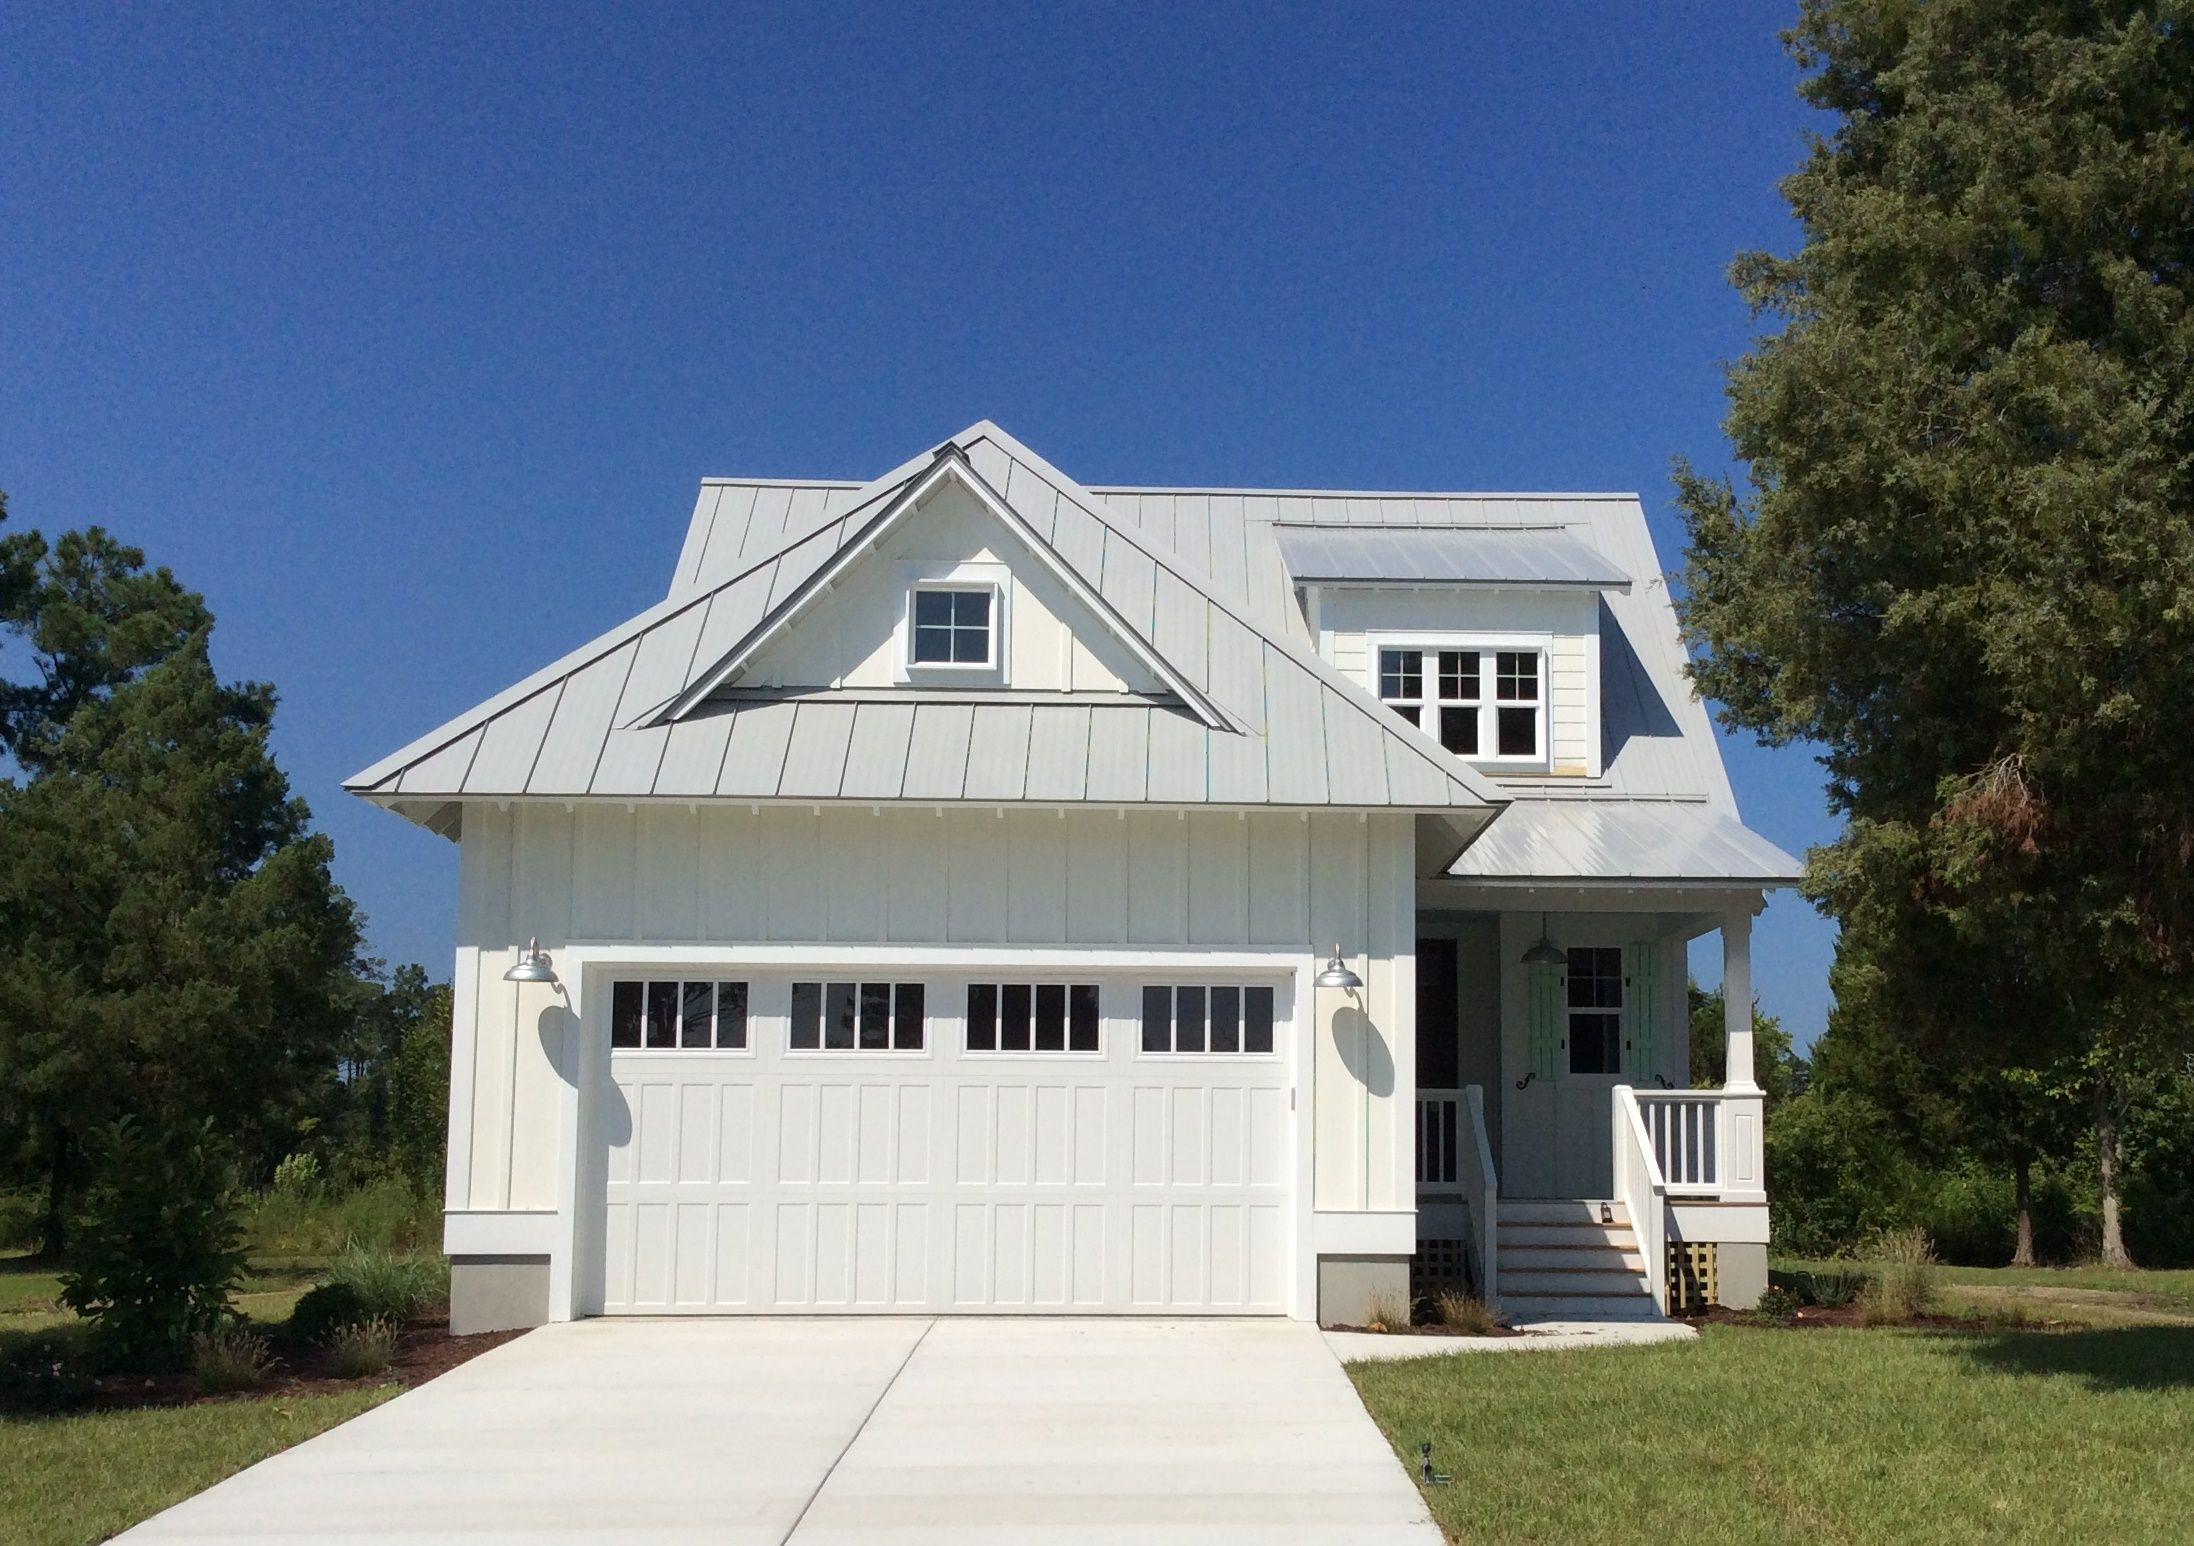 Best Metal Roofs Photo Gallery Metal Roofing For Residential And Commercial Roofs Union 640 x 480